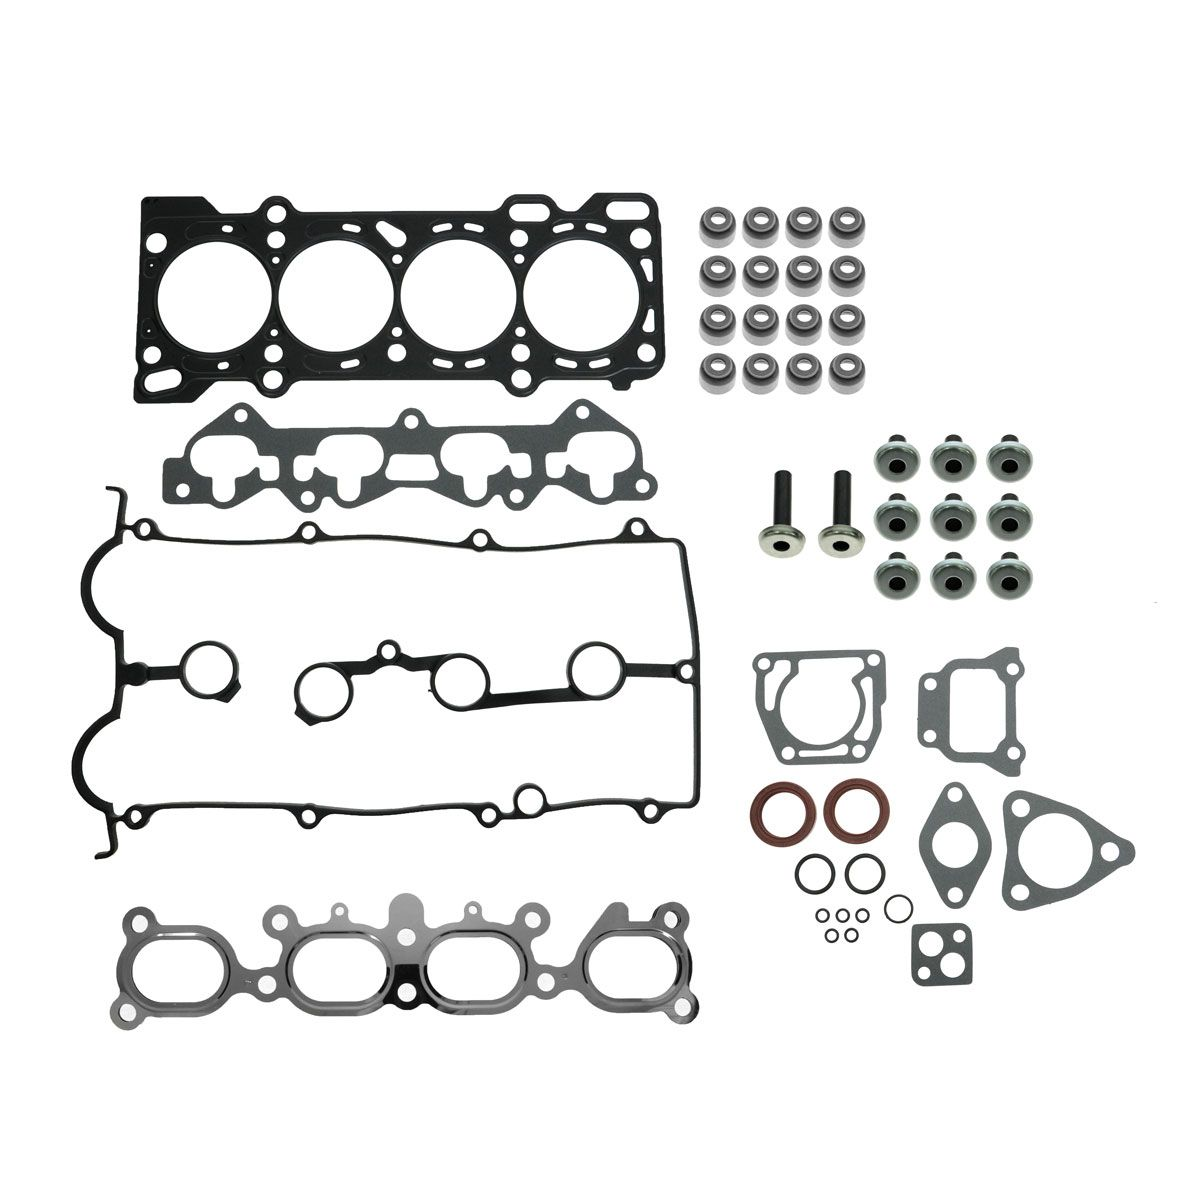 Engine Cylinder Head Gasket Set For Mazda Protege 626 2 0l